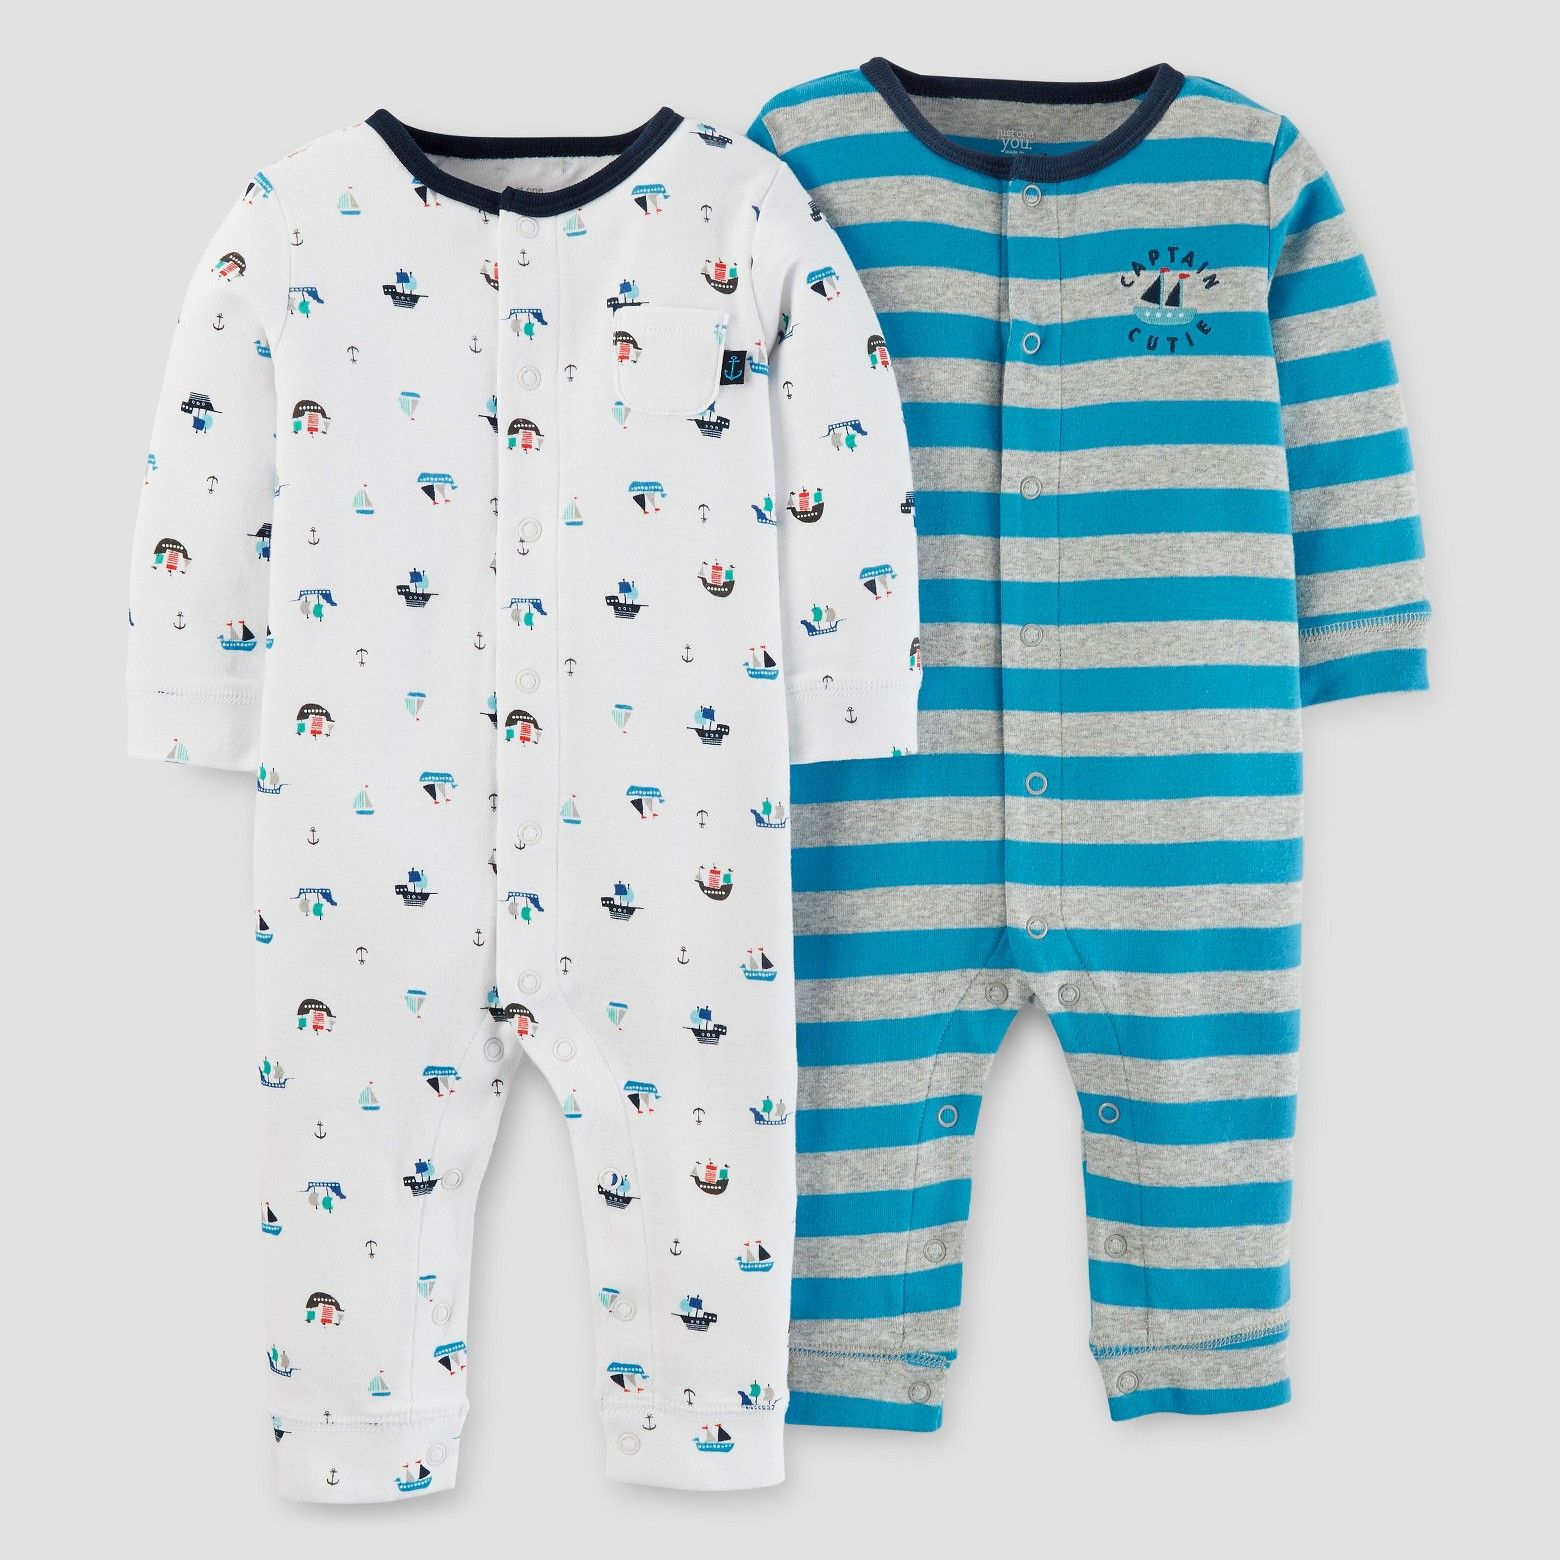 Shop Tar for baby boy clothing you will love at great low prices